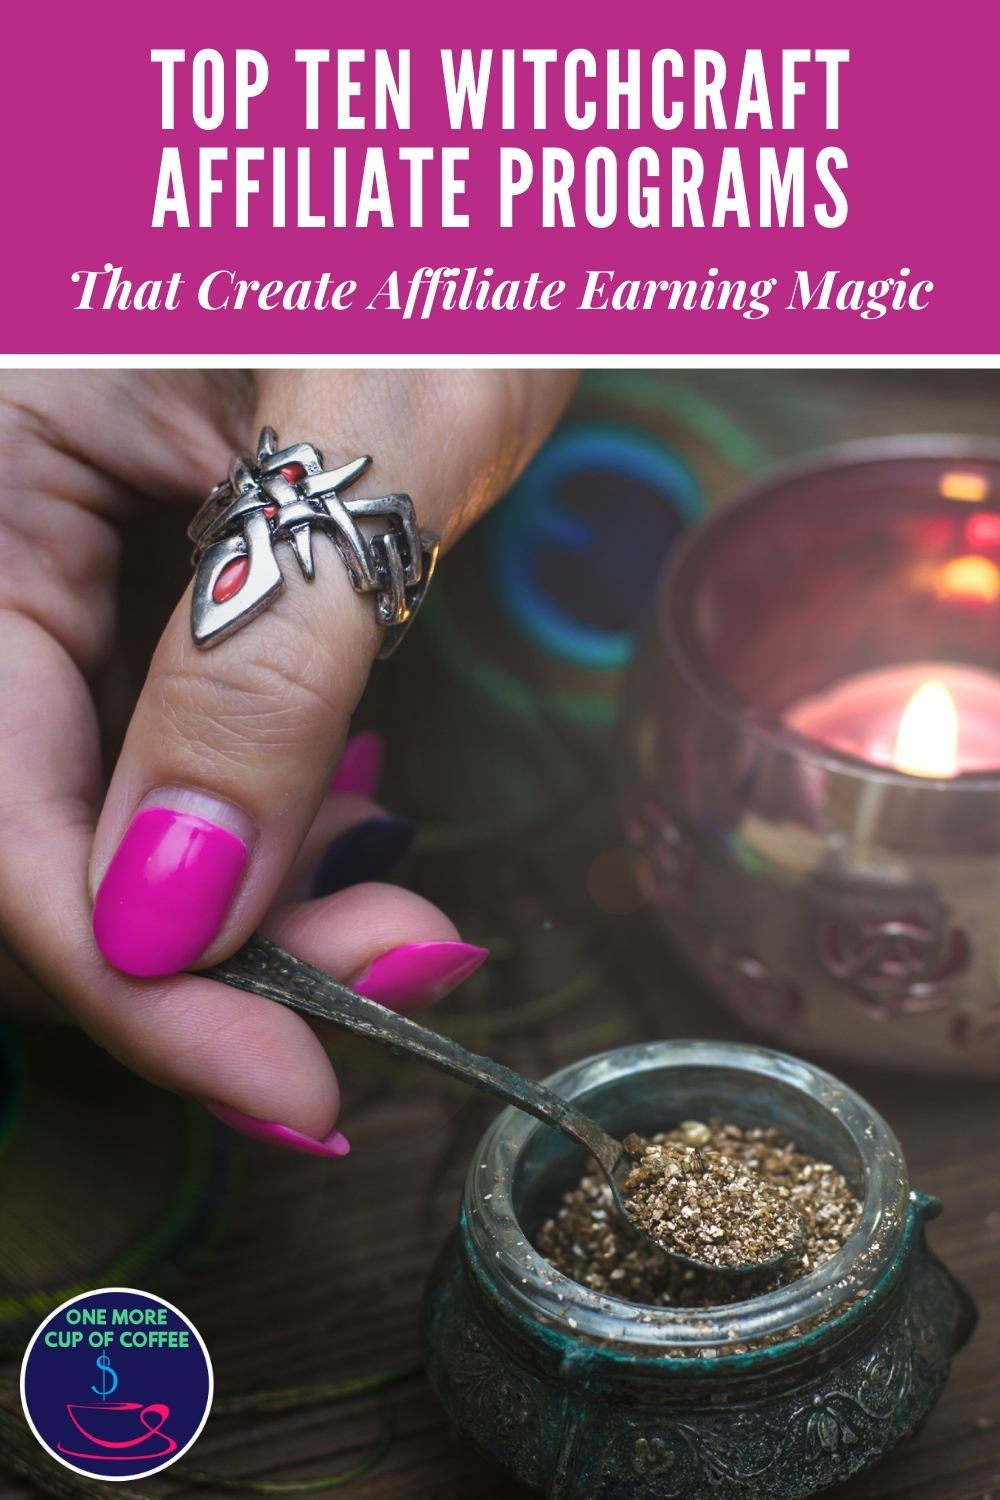 """closeup image of a hand with purple nails and ring in thumb finger, scooping herbs from a little container with a tiny spoon, candle at the back; with text at the top in purple banner """"Top Ten Witchcraft Affiliate Programs That Create Affiliate Earning Magic"""""""